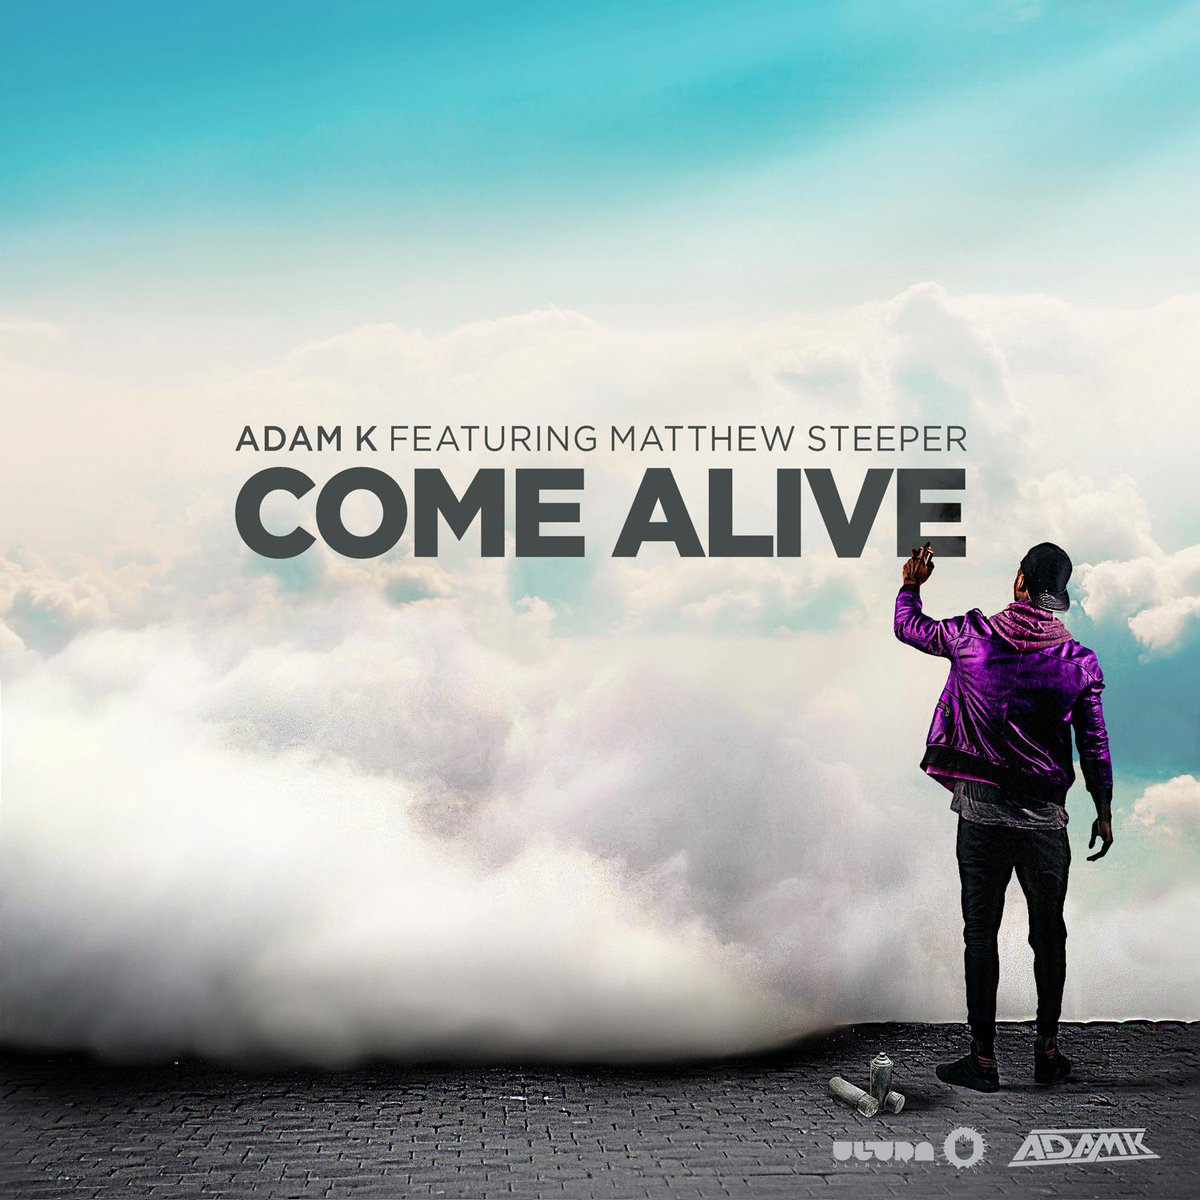 Go over to @wavome to check out my new single on @ultrarecords f/ @matthewsteeper #ComeAlive https://t.co/qDMFttUmlZ http://t.co/CbIei6QLVF